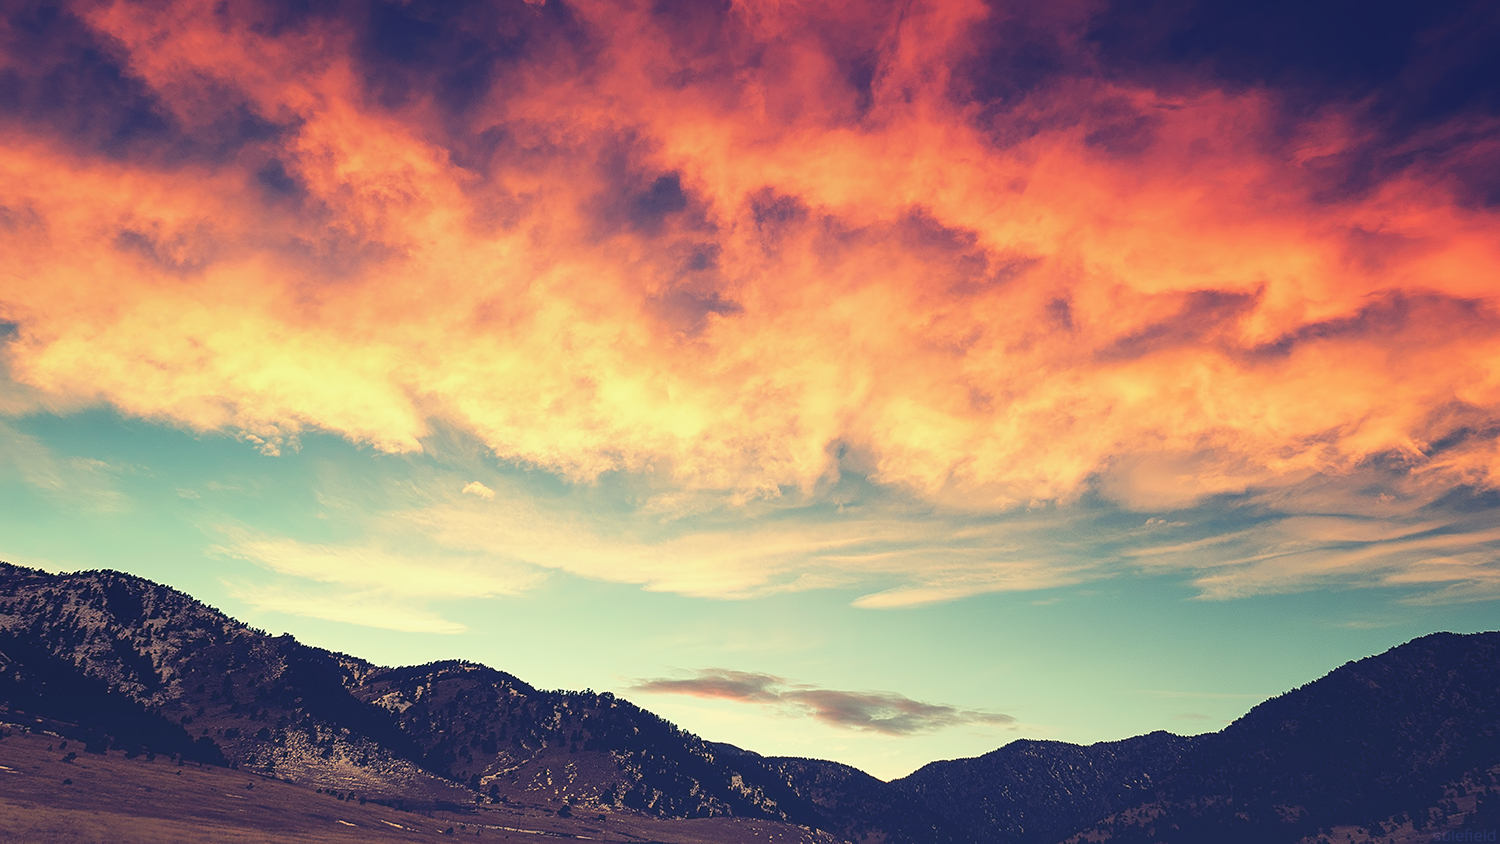 Dramatic Pink Sunset Clouds Over Mountains